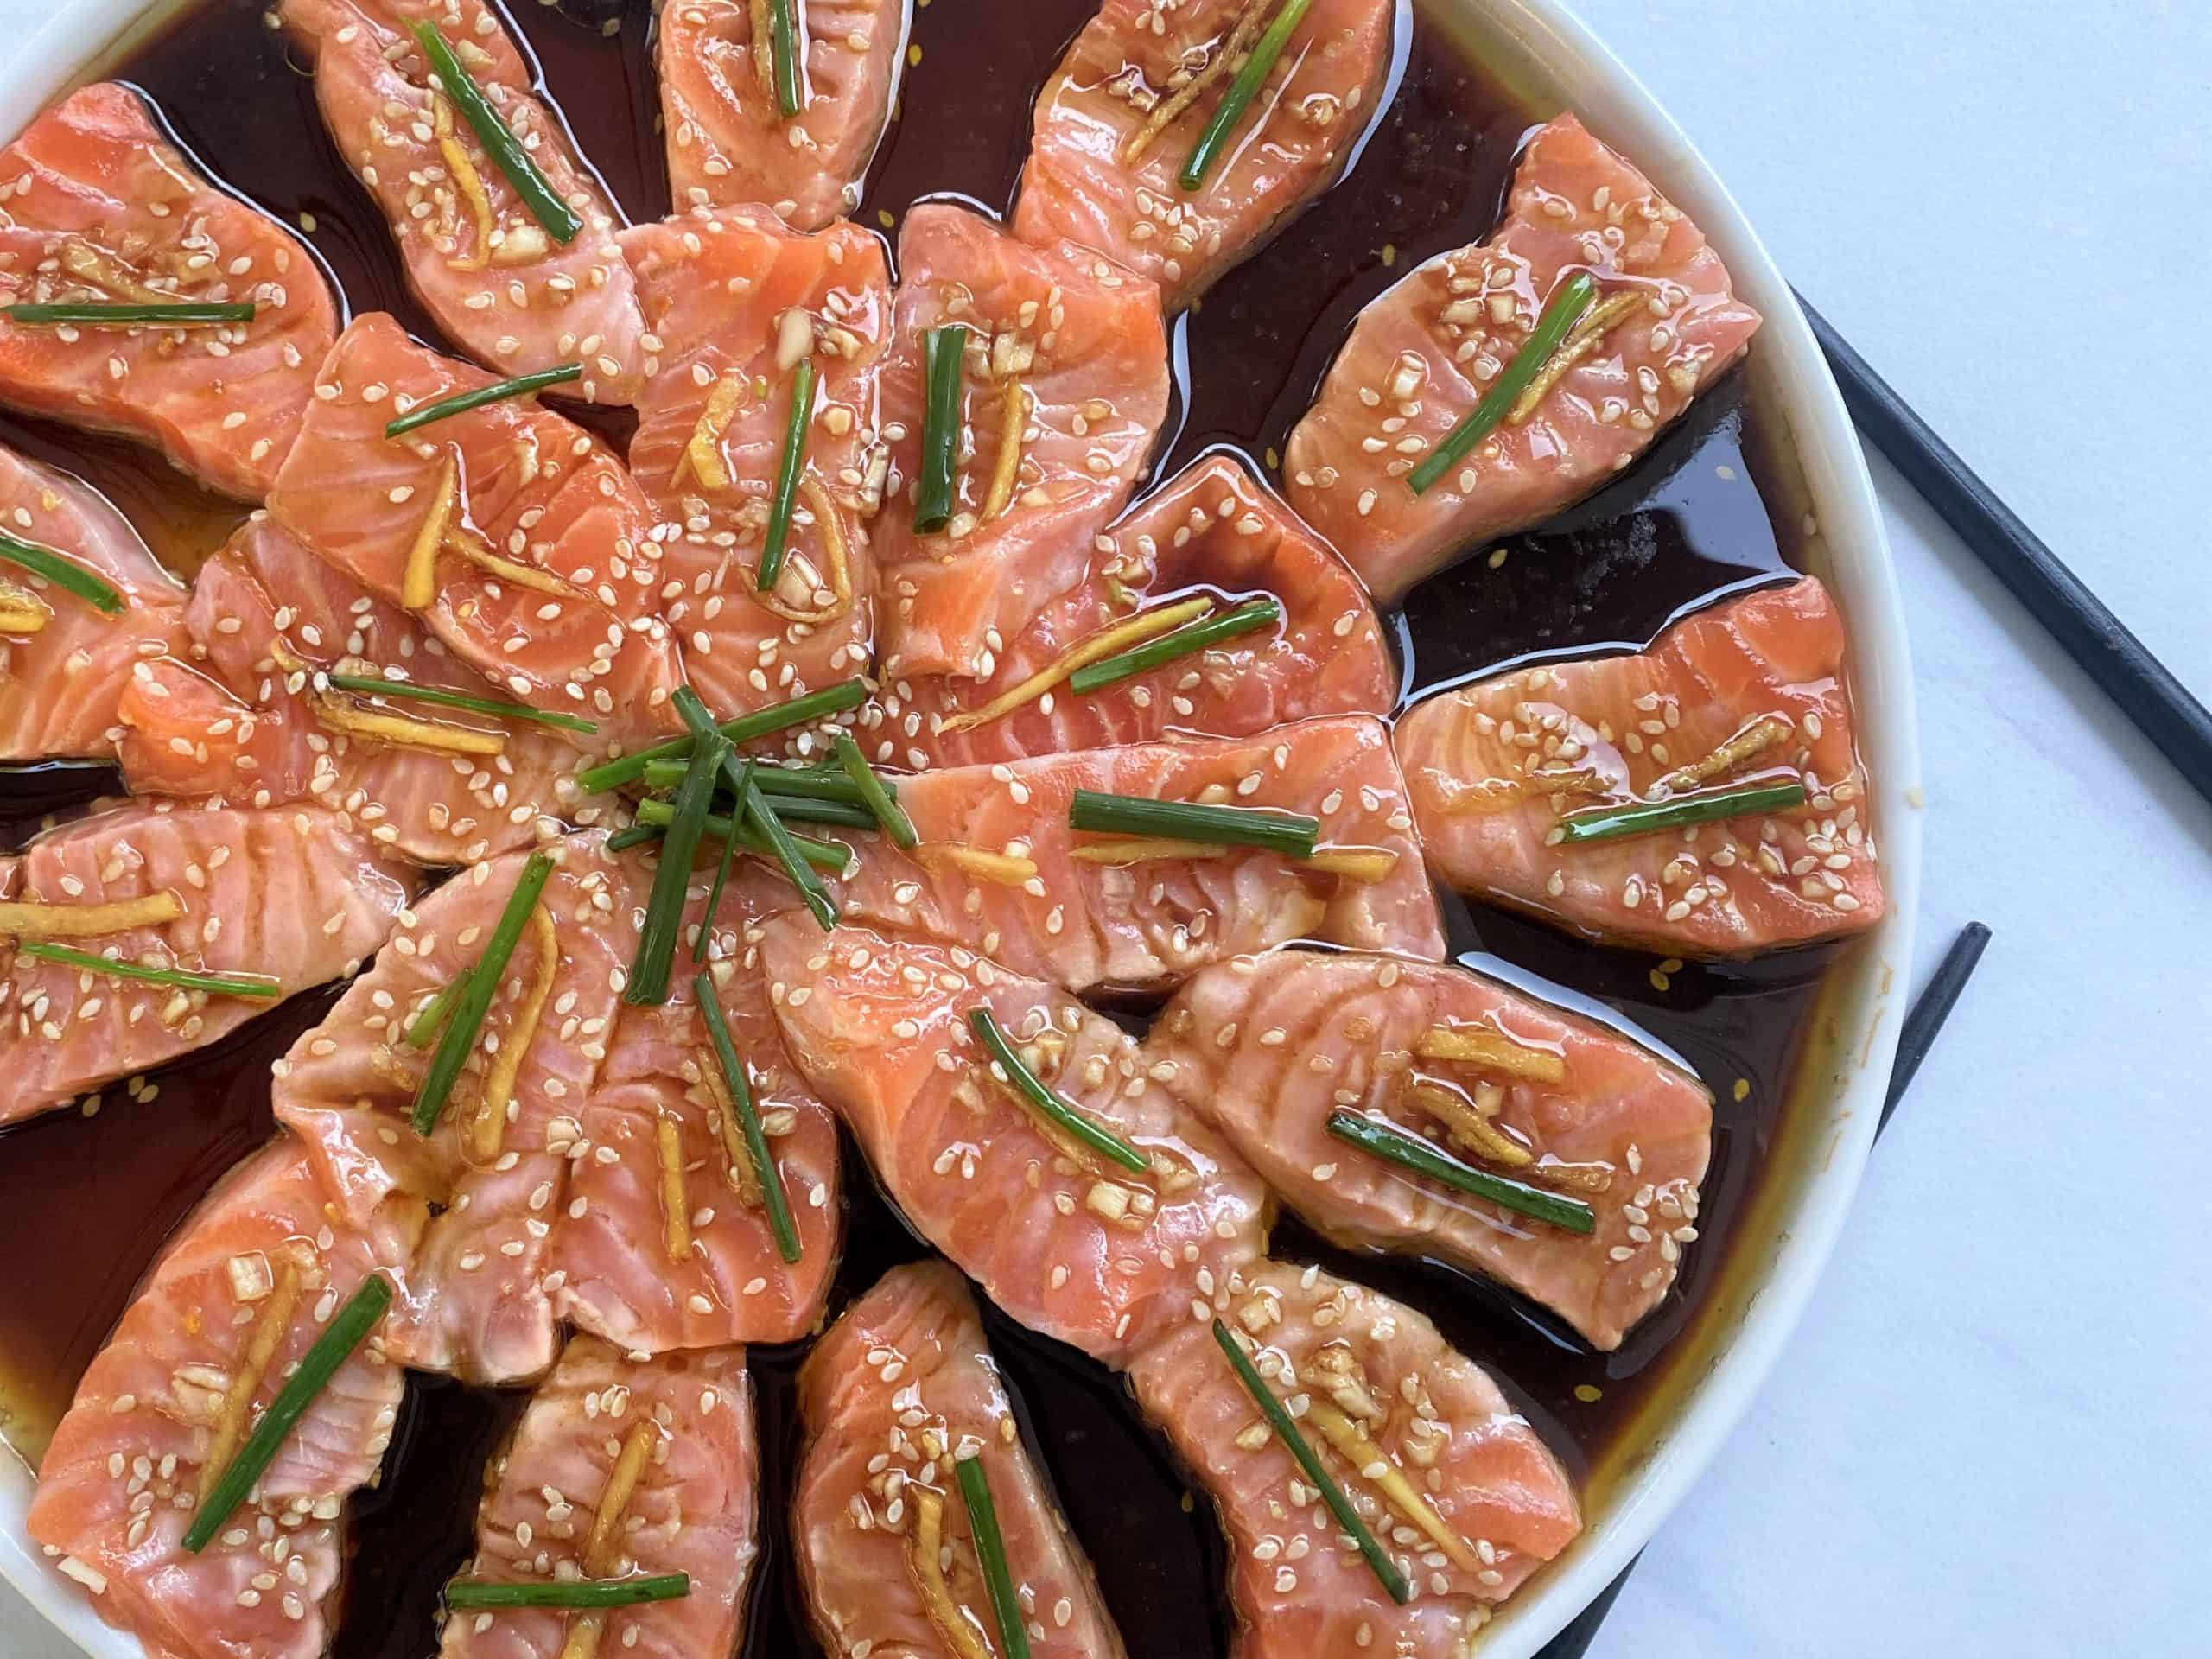 Nobu's new style sashimi made with salmon.. Sliced salmon placed circularly on a plate with toppings.